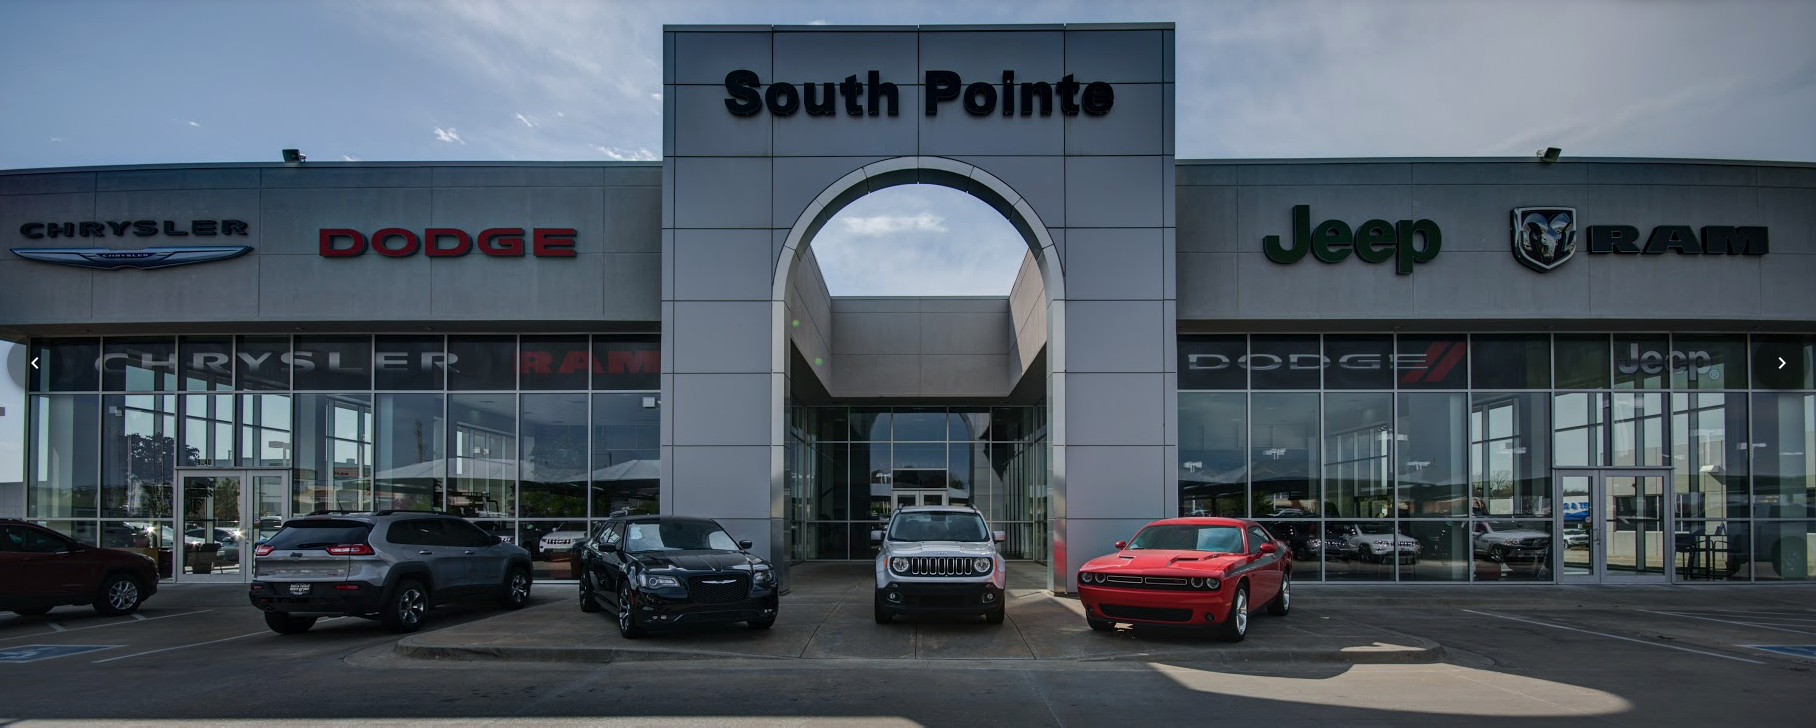 South Pointe Chrysler Jeep Dodge Ram dealership near Bartlesville OK